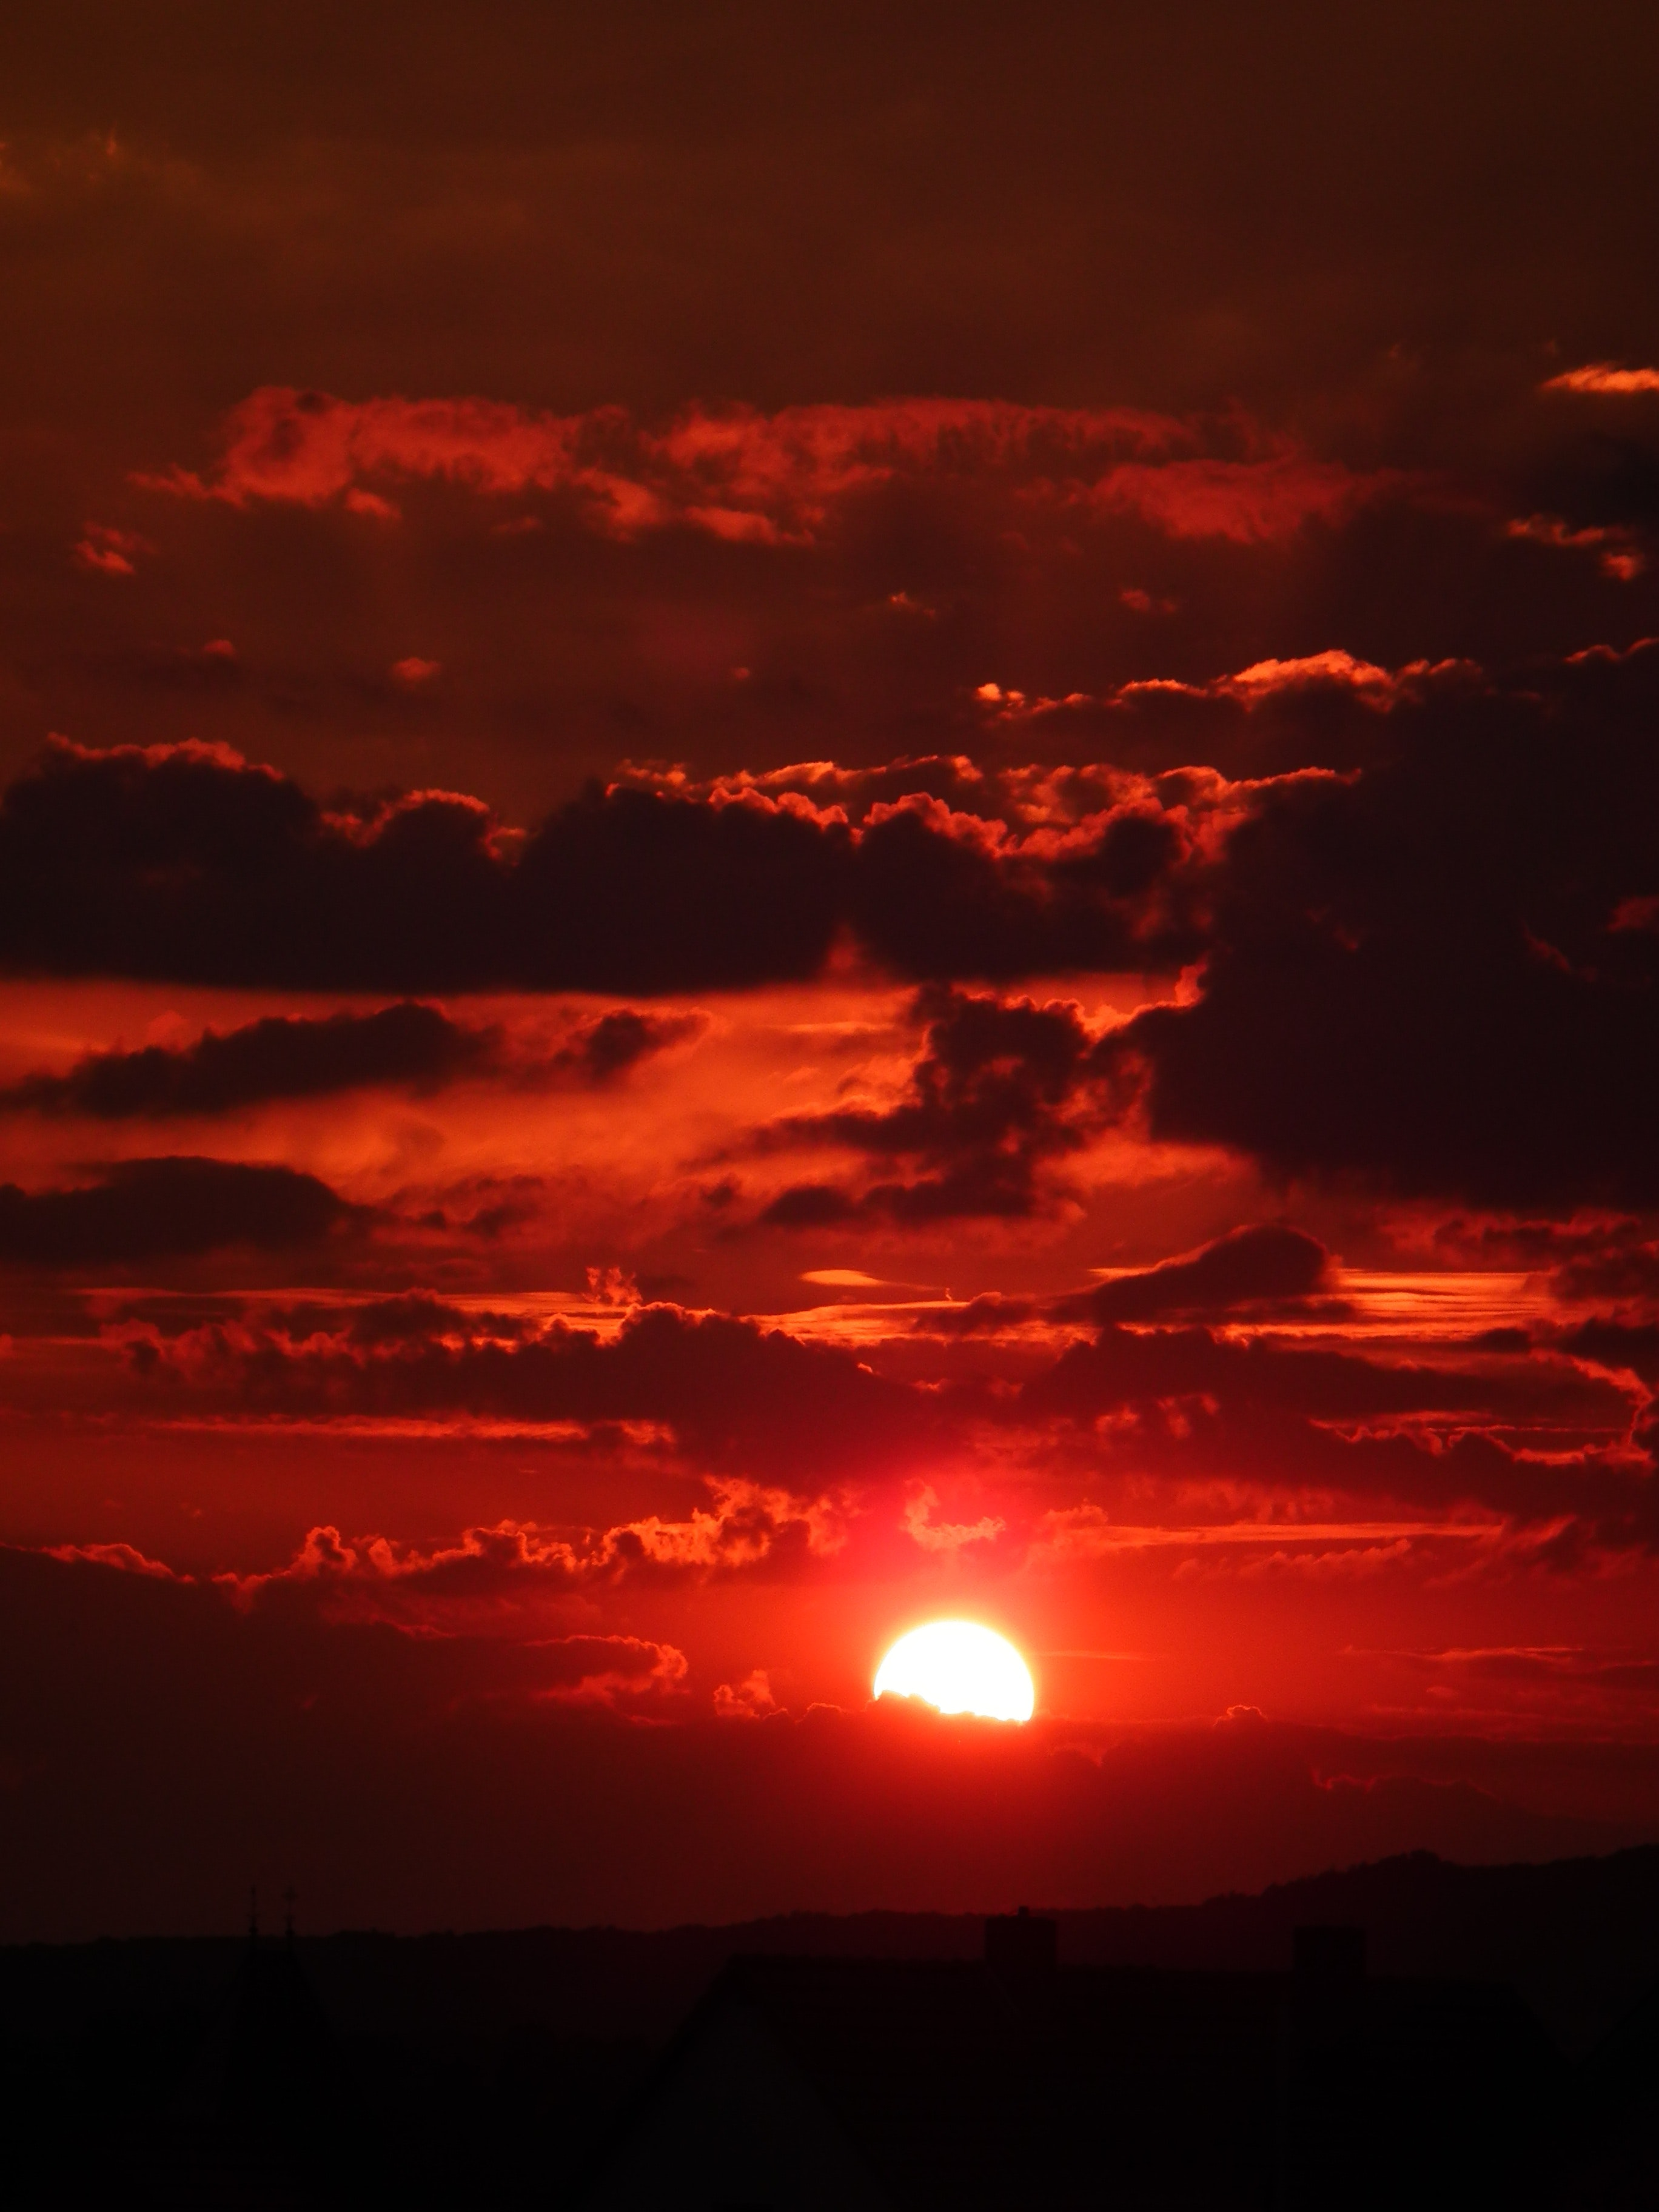 Red Cloudy Sky during Sunset, Clouds, Dawn, Dusk, Nature, HQ Photo